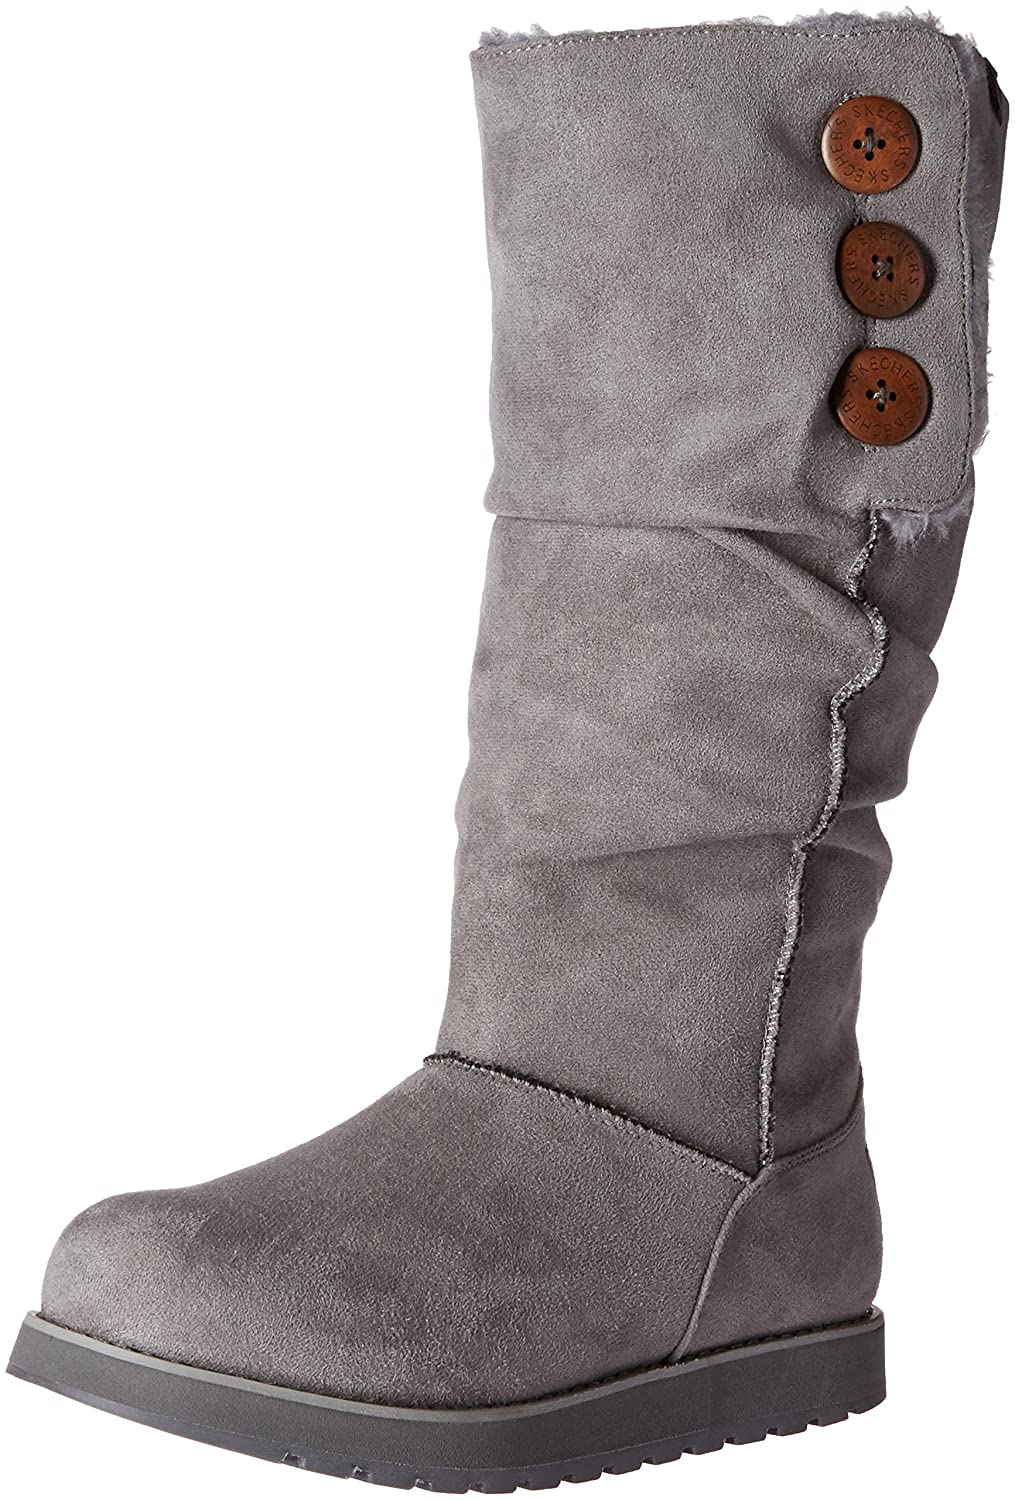 Skechers Womens Keepsakes-Big Button Slouch Tall Winter Boot  5 B(M) US Charcoal